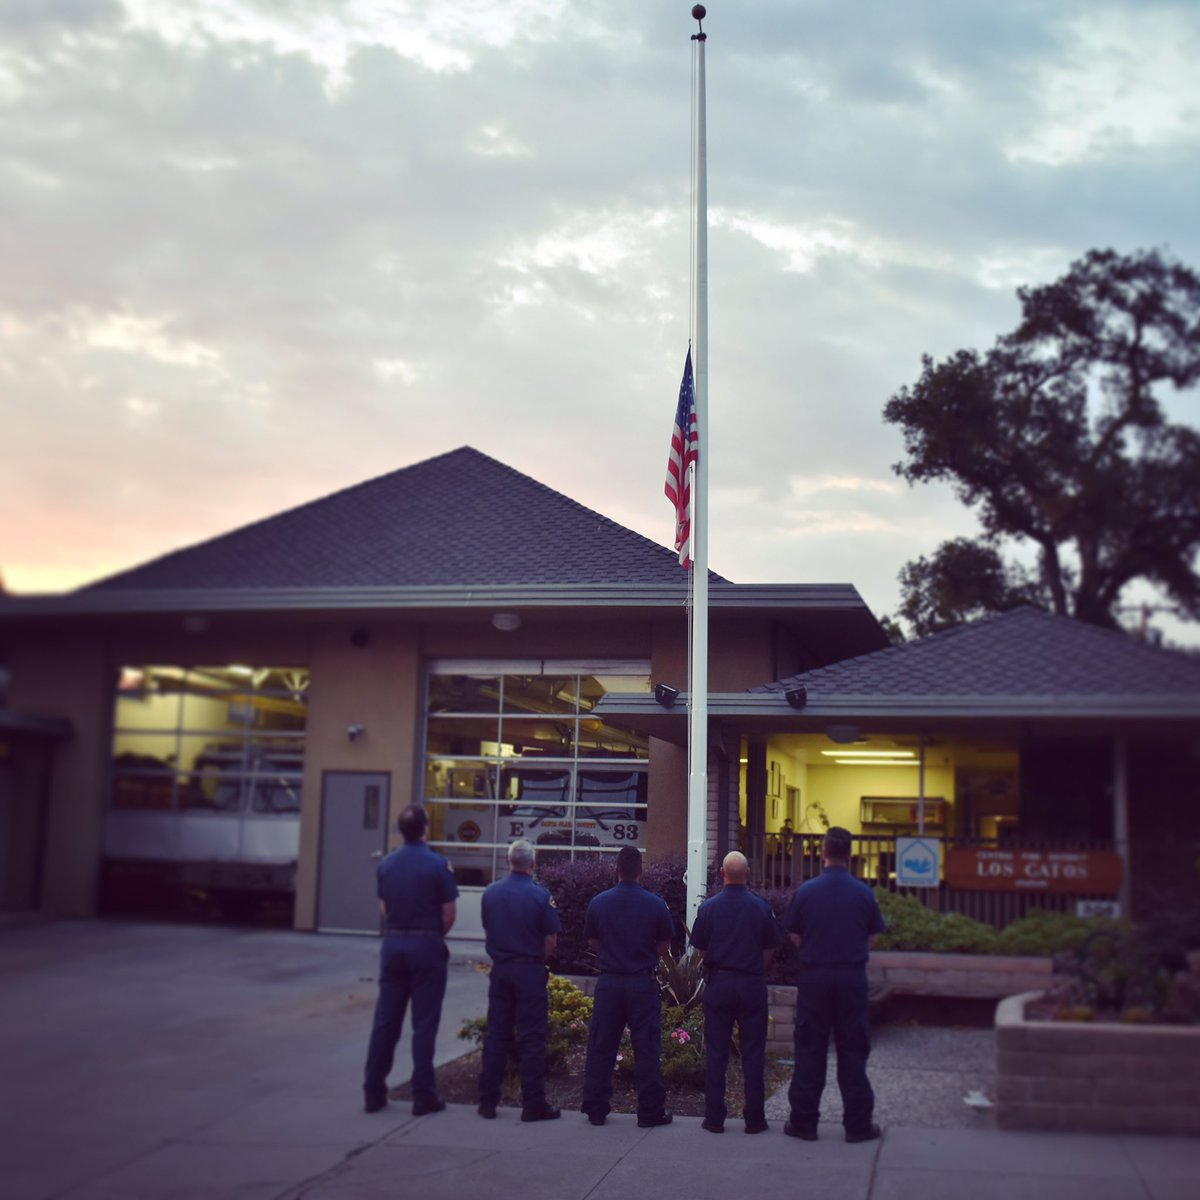 <div class='meta'><div class='origin-logo' data-origin='none'></div><span class='caption-text' data-credit='sccfiredept/Twitter'>The Santa Clara County Fire Department tweeted this photo on Monday, Sept. 11, 2017 to pay tribute to the victims of 9/11.</span></div>